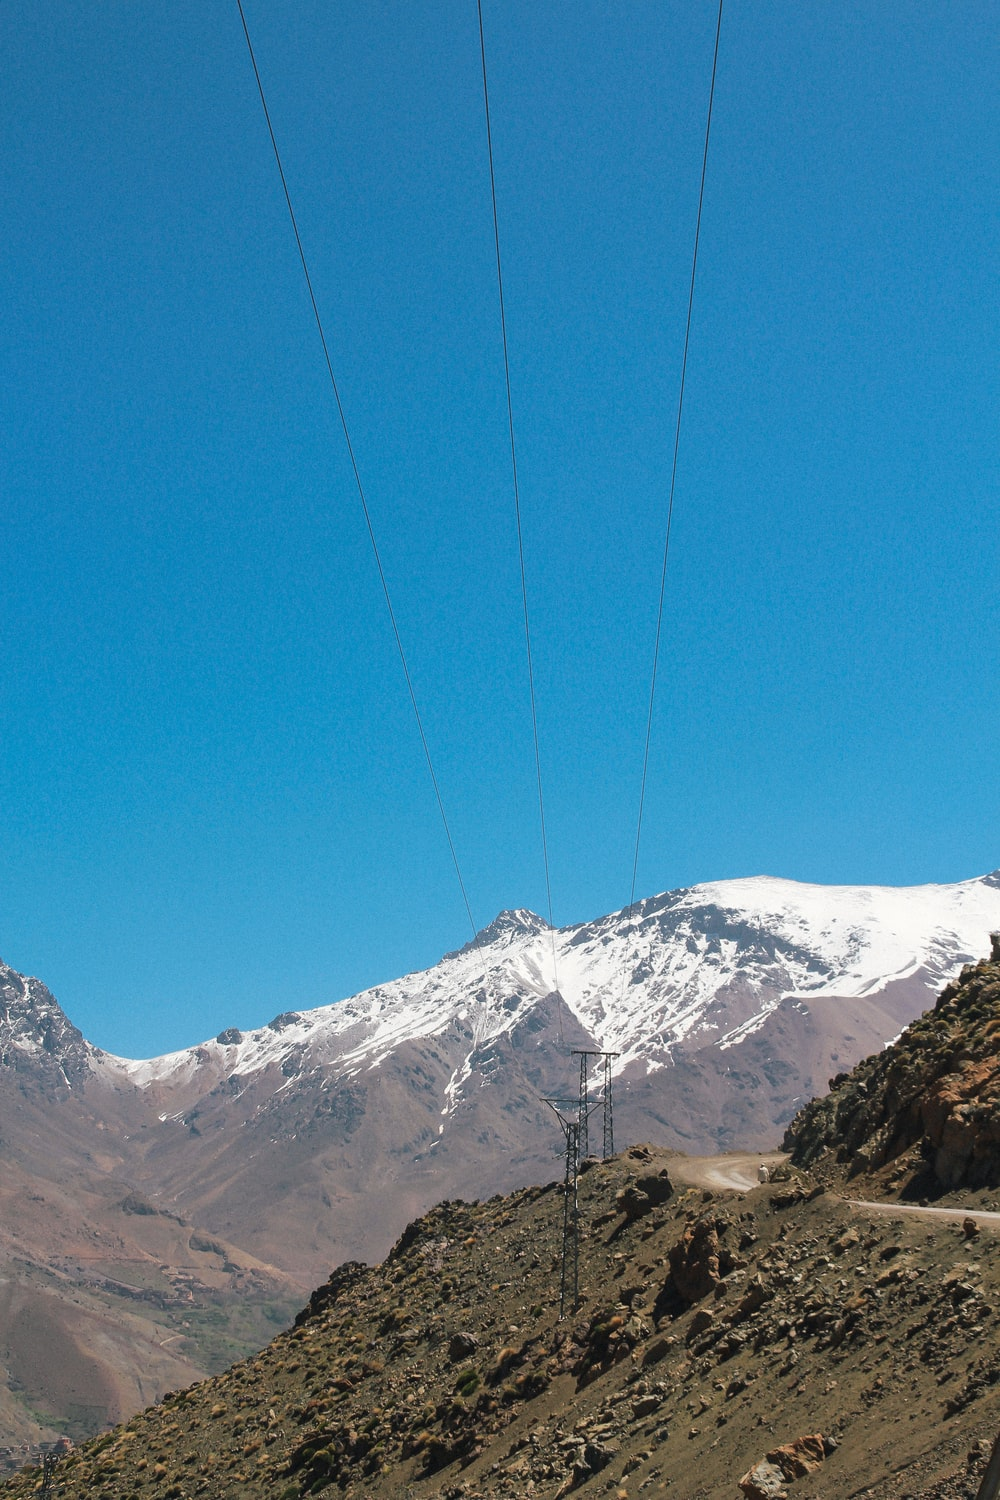 power transmission lines on mountain slope under clear blue sky